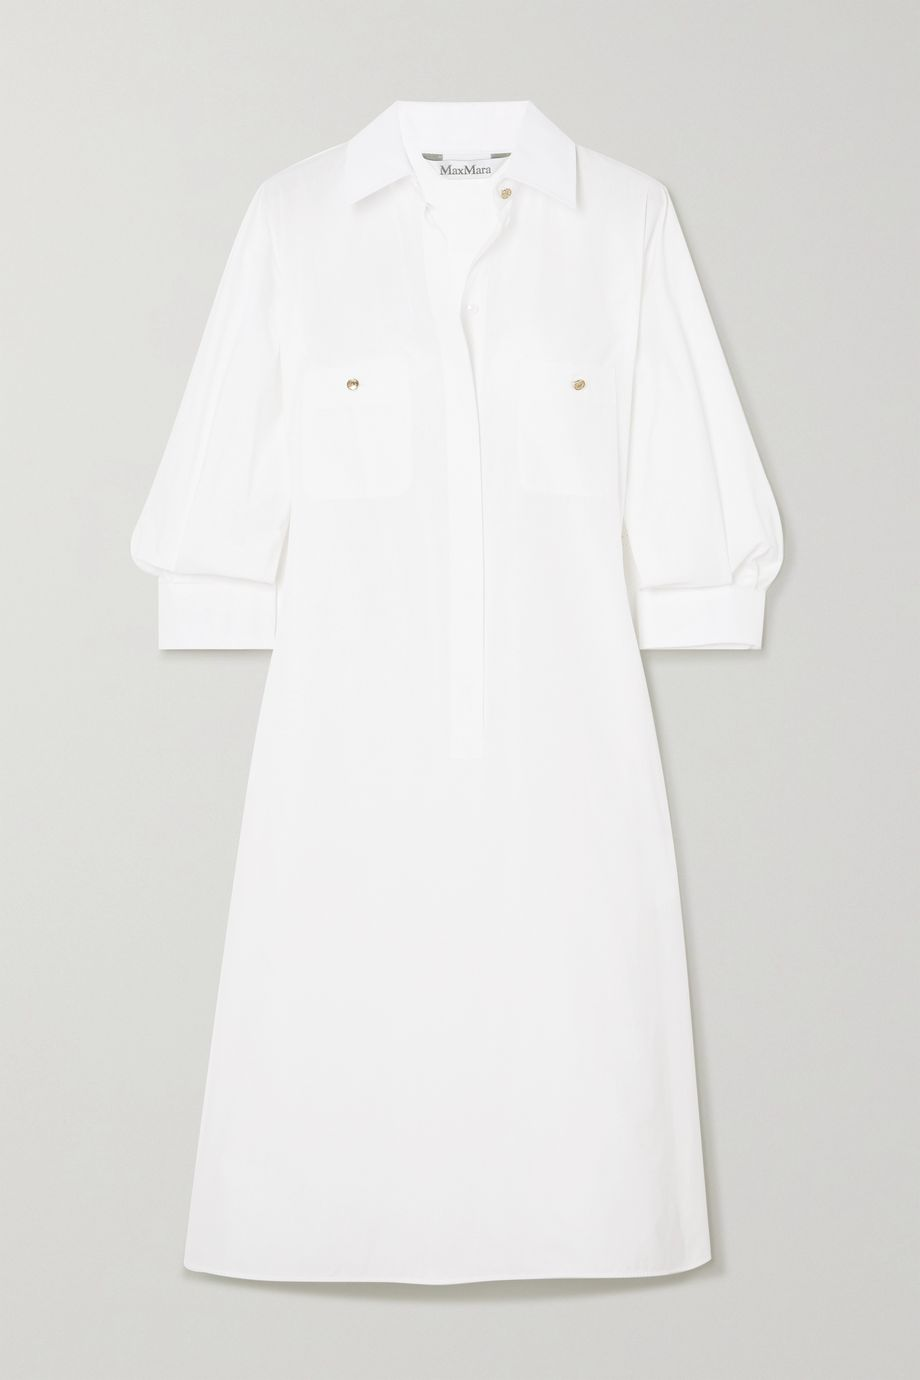 Max Mara Vibo cotton shirt dress